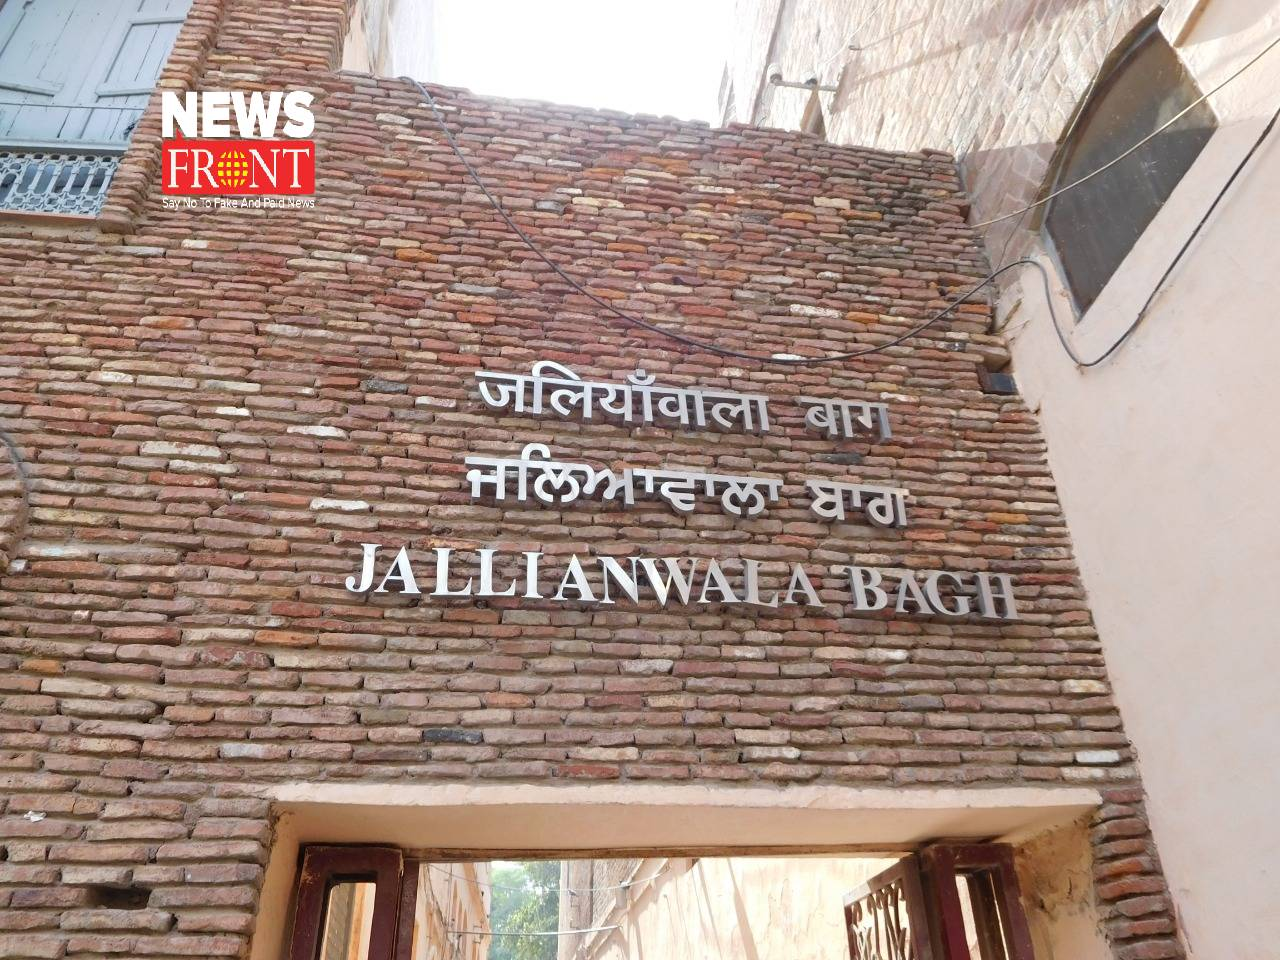 Jallianwala Bagh | newsfront.co